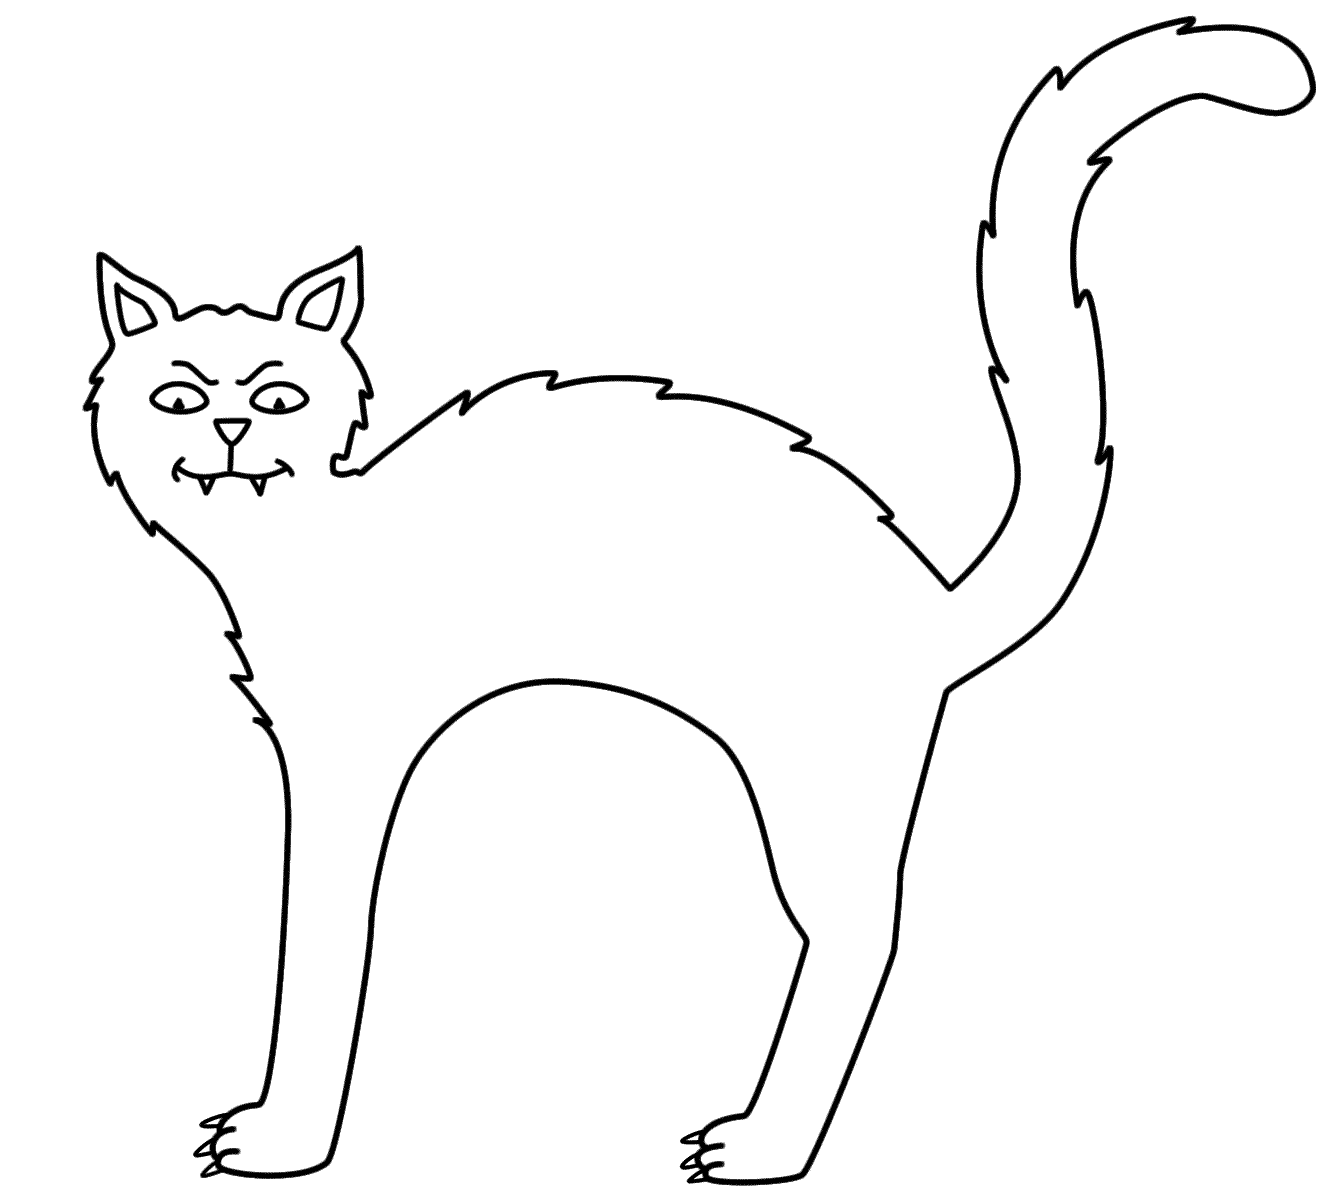 Black Cat Coloring Pages Templates - Coloring Pages For All Ages